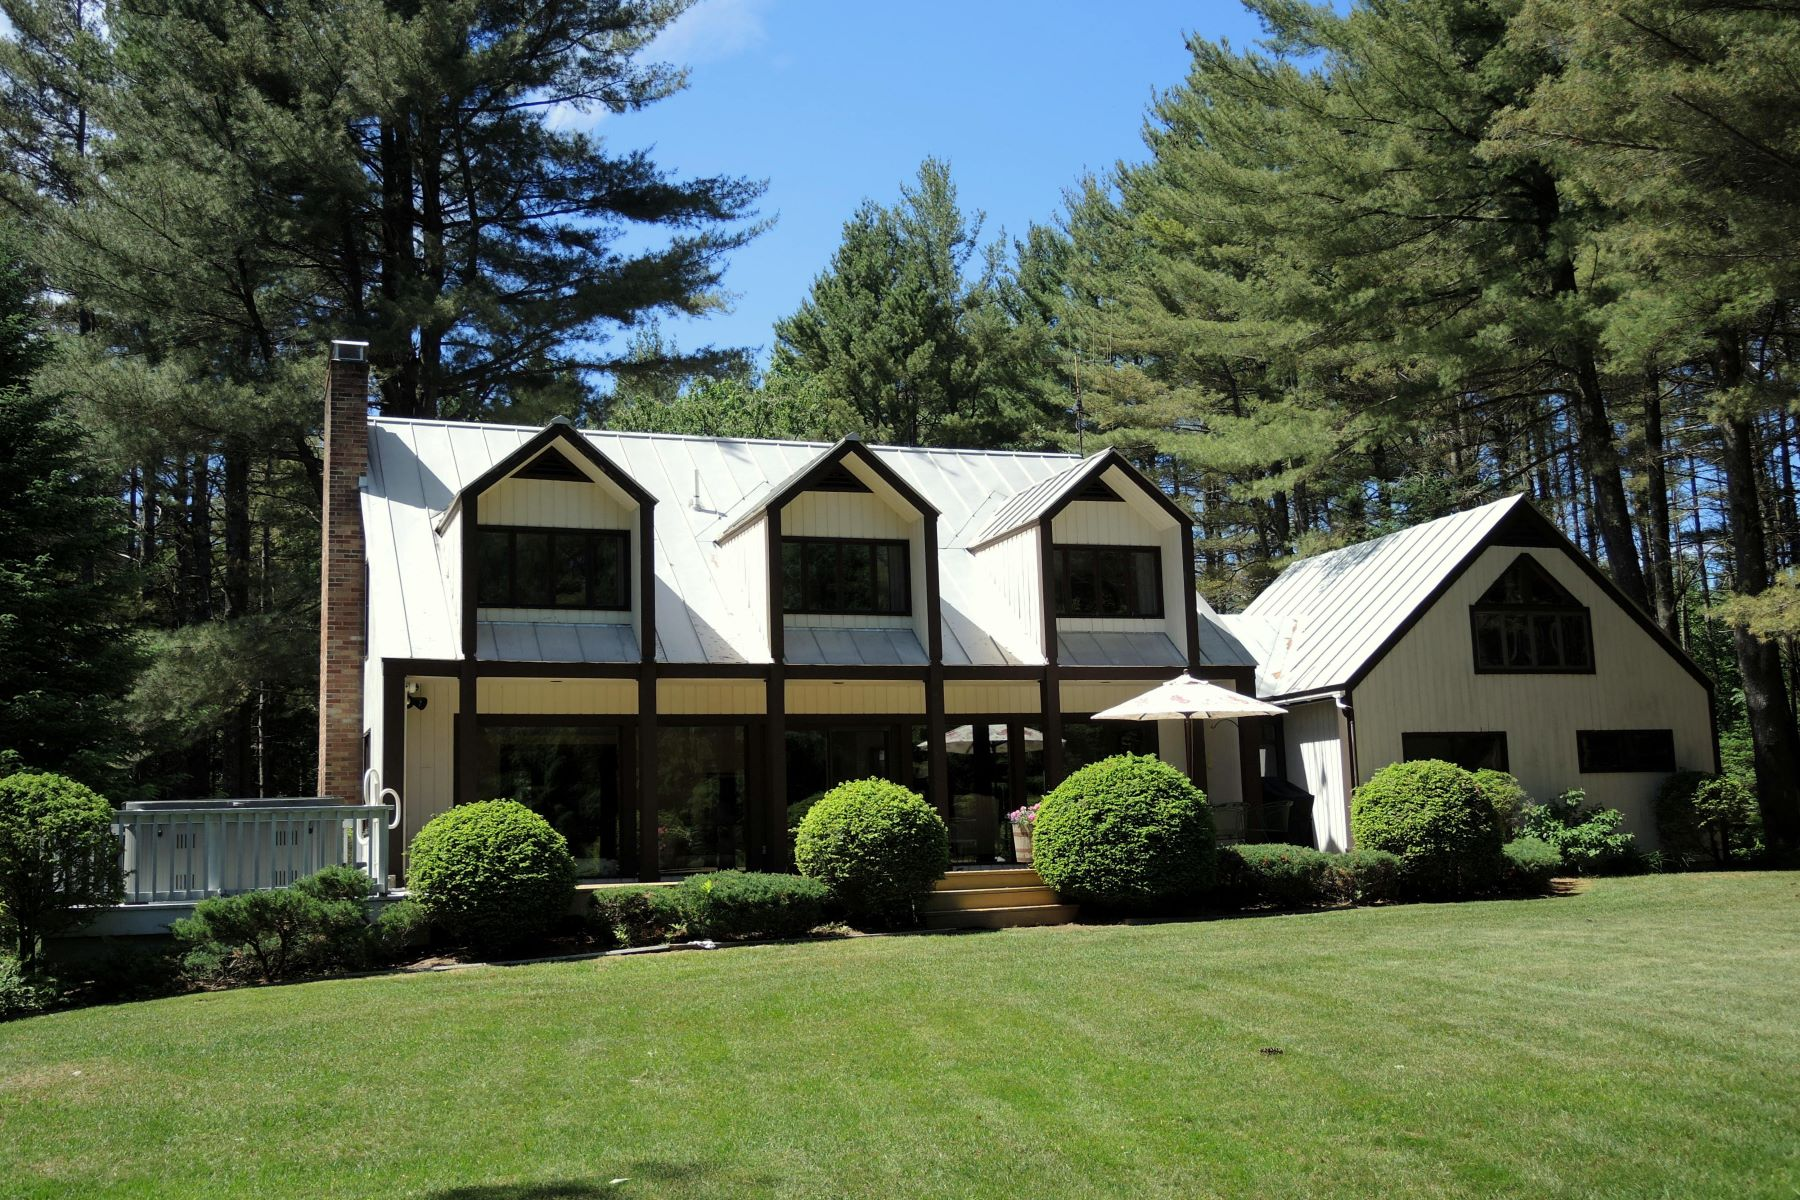 Single Family Home for Sale at Private, yet convenient mendon cape 113 Deer Run 7 Mendon, Vermont 05701 United States